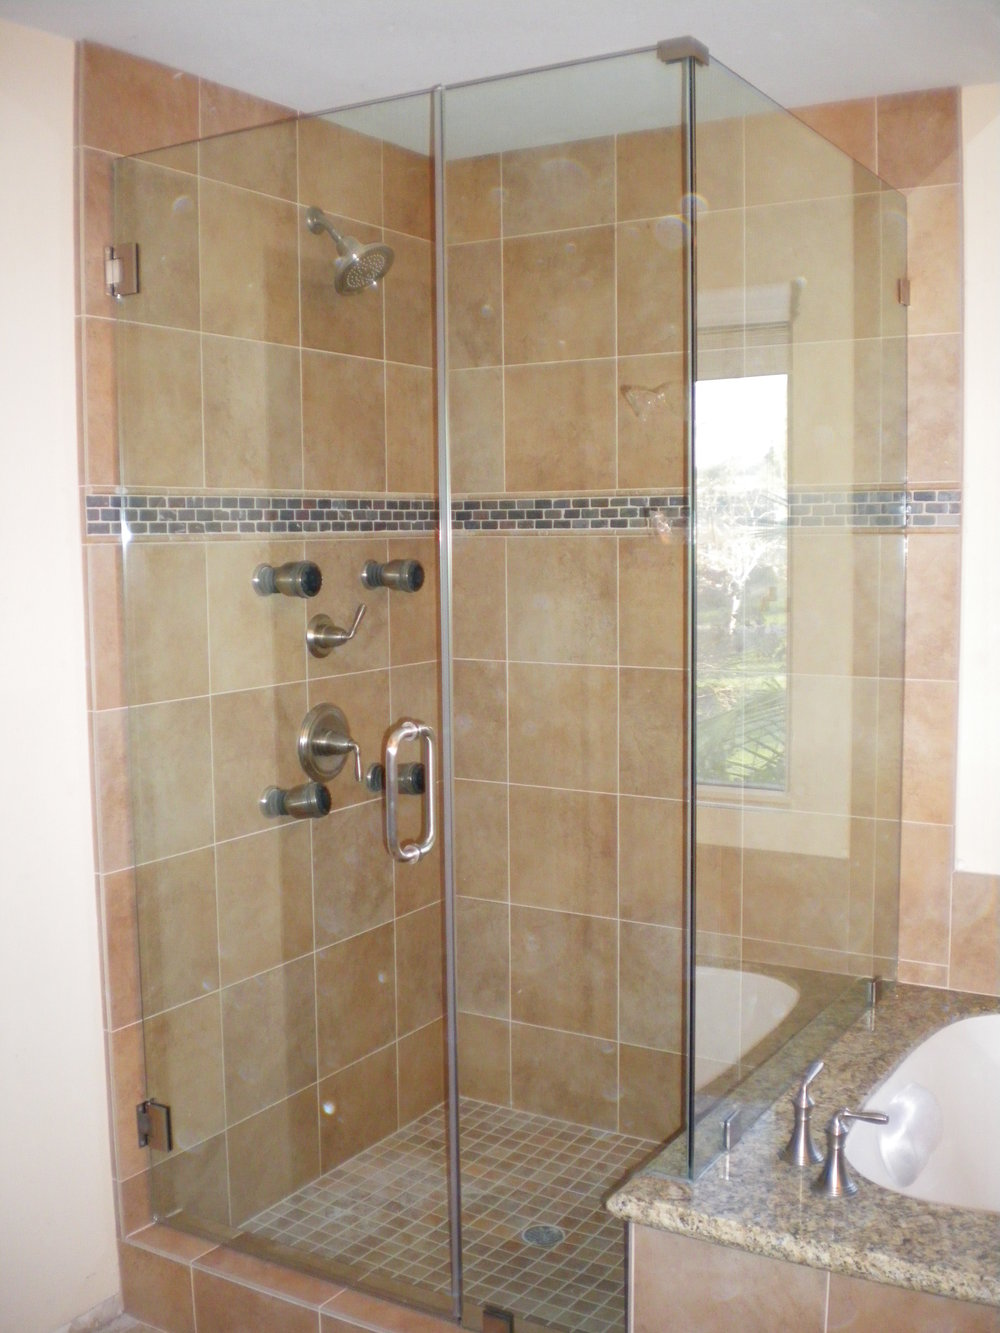 Shower-Doors-Residential-Photos-29.jpg